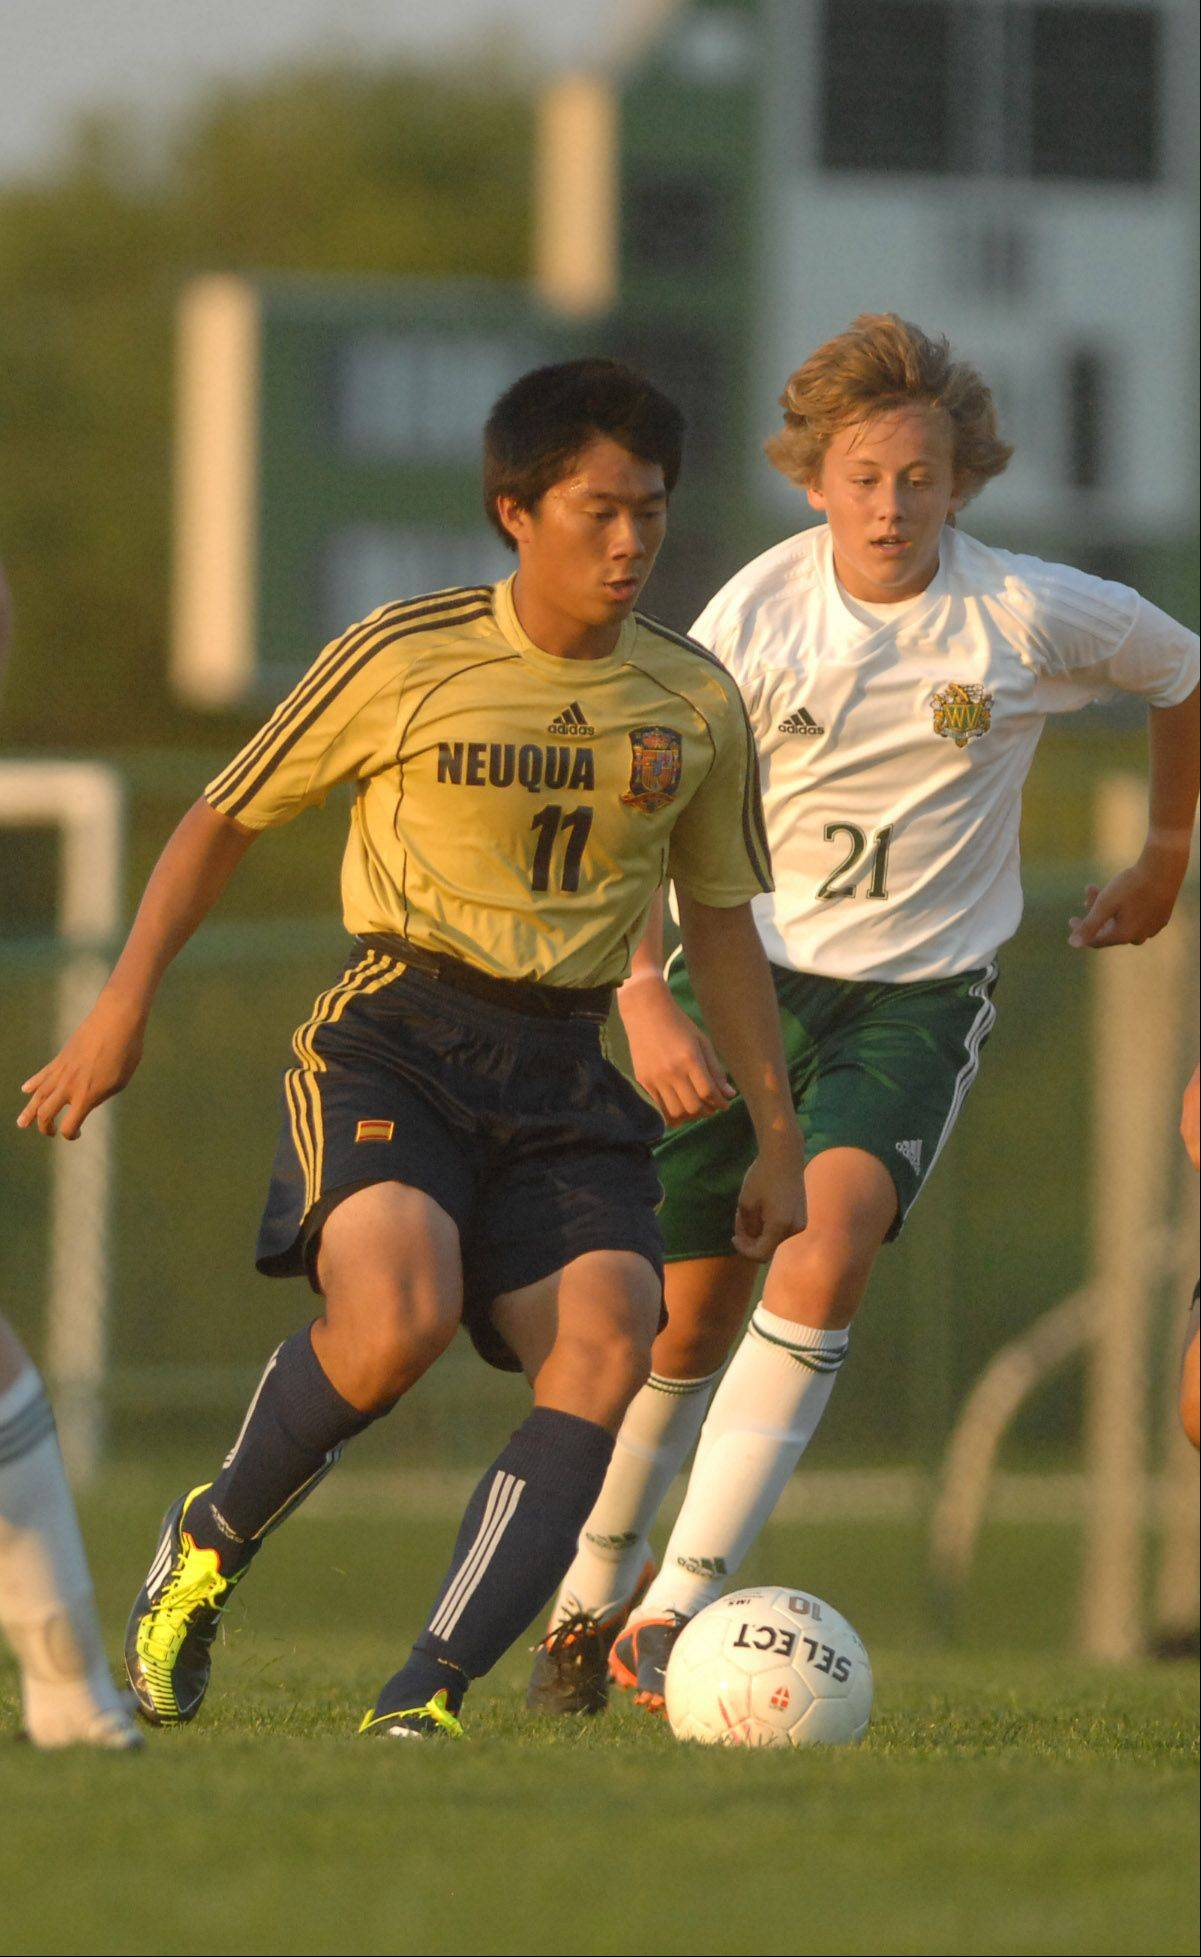 Alex Liu,left, and Michael Miller run after the ball during the Neuqua Valley at Waubonsie Valley boys Soccer game Thursday.